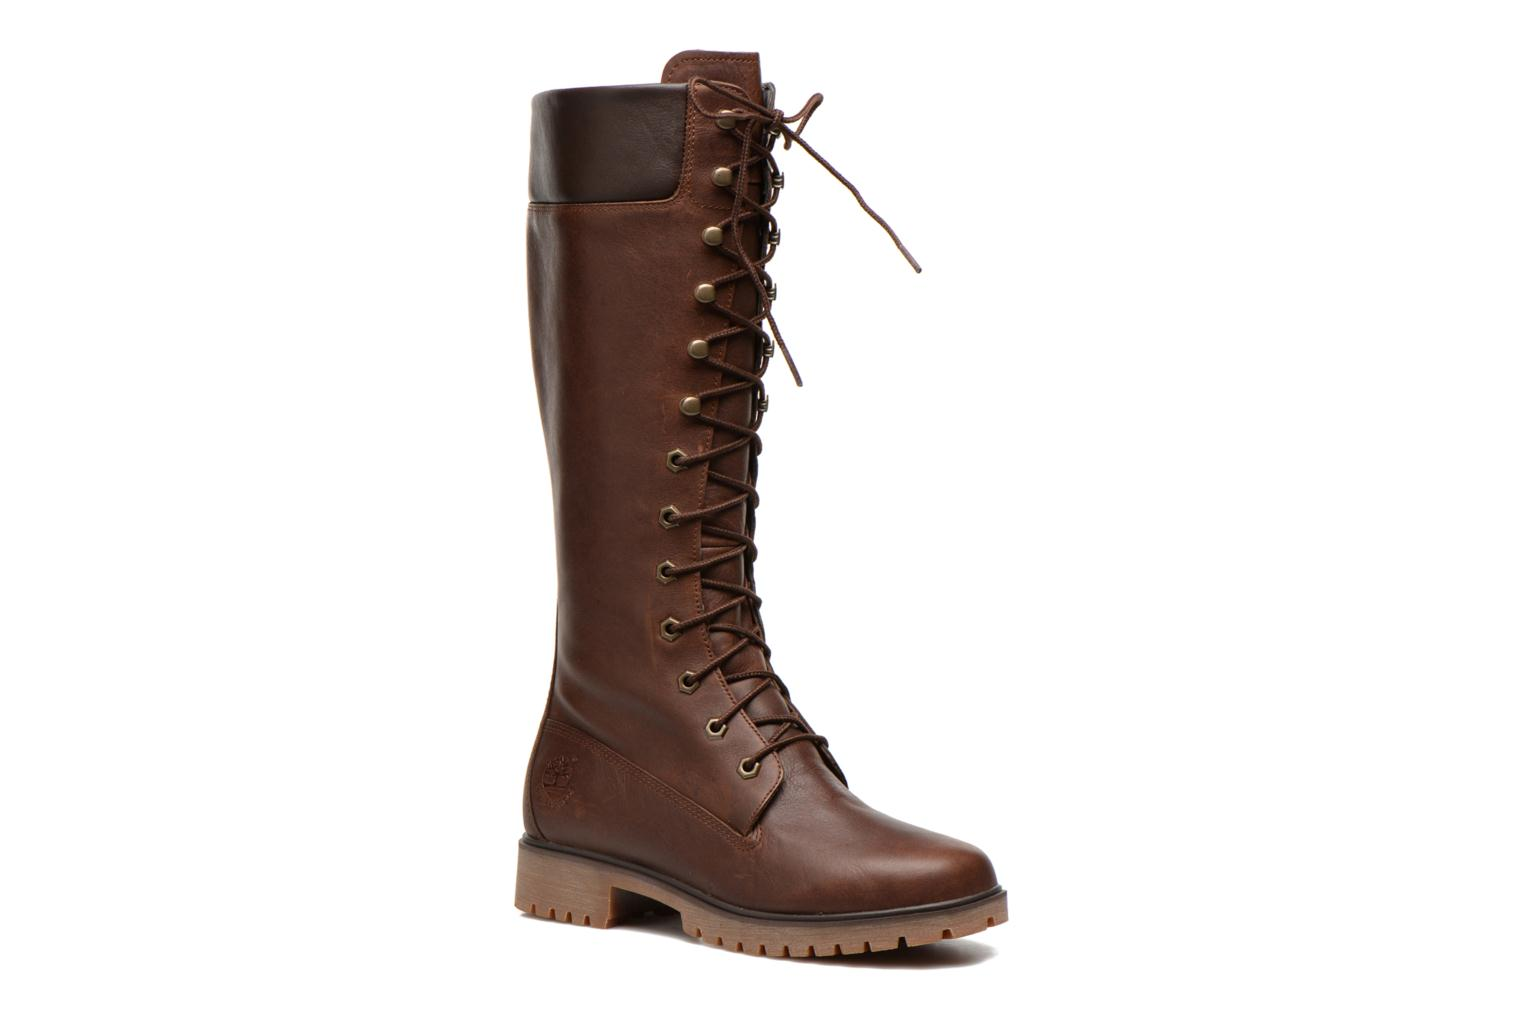 Women's Premium 14 inch Dark Brown Forty Leather